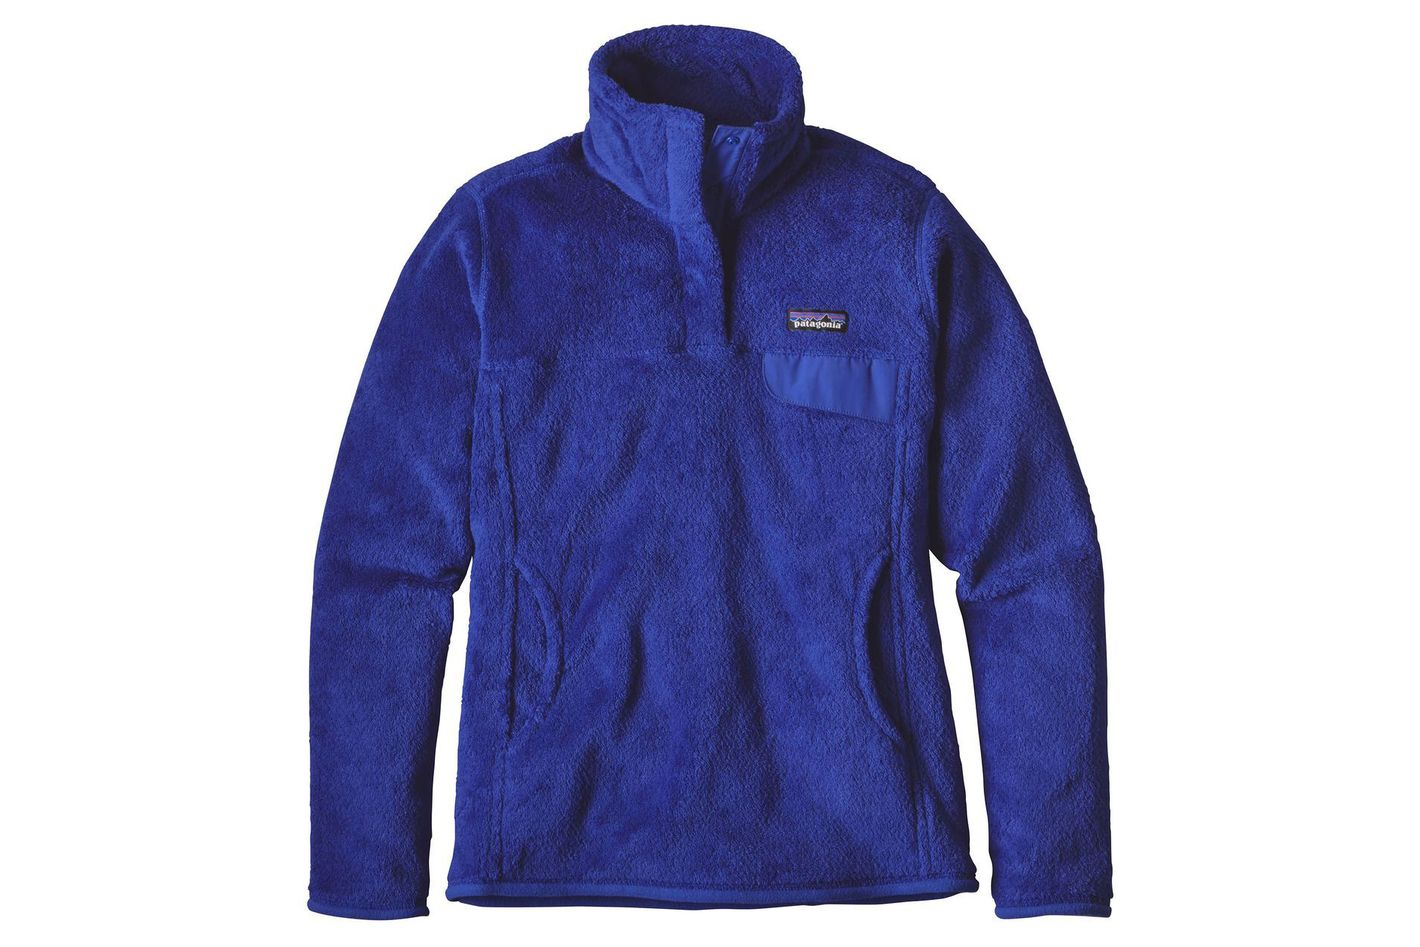 Patagonia Re-Tool Snap-T Fleece Pullover in Harvest Moon Blue